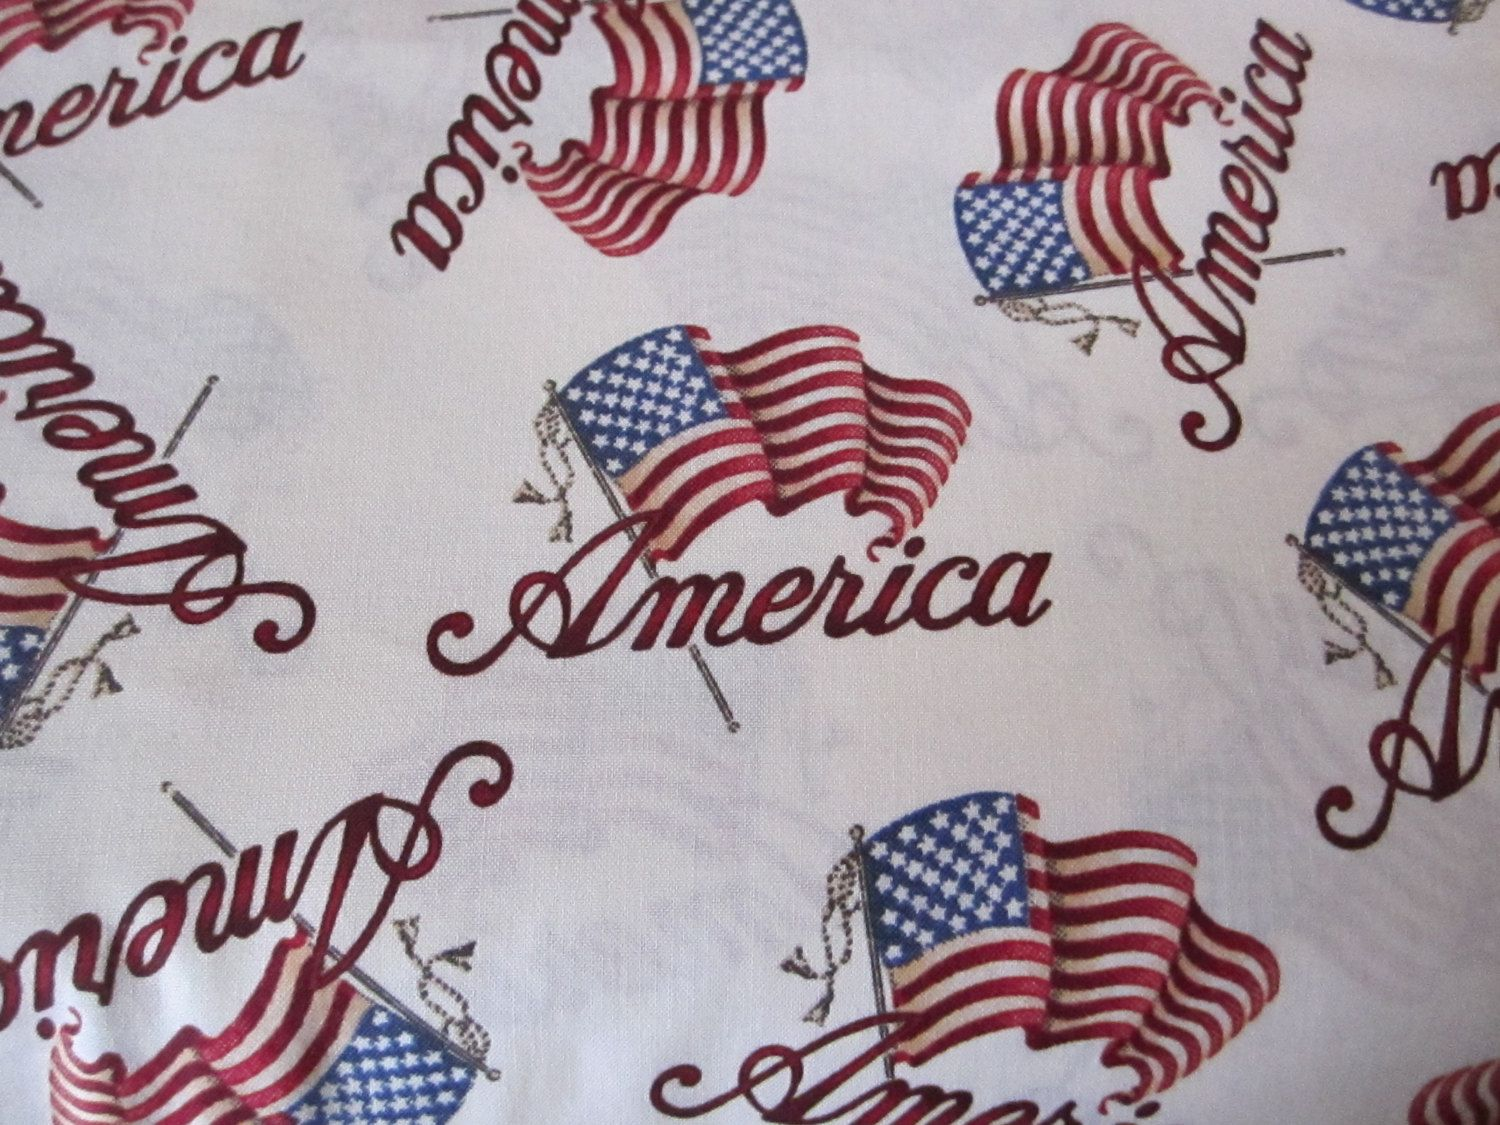 America/American Flag  #58 by FloridaFriends on Etsy